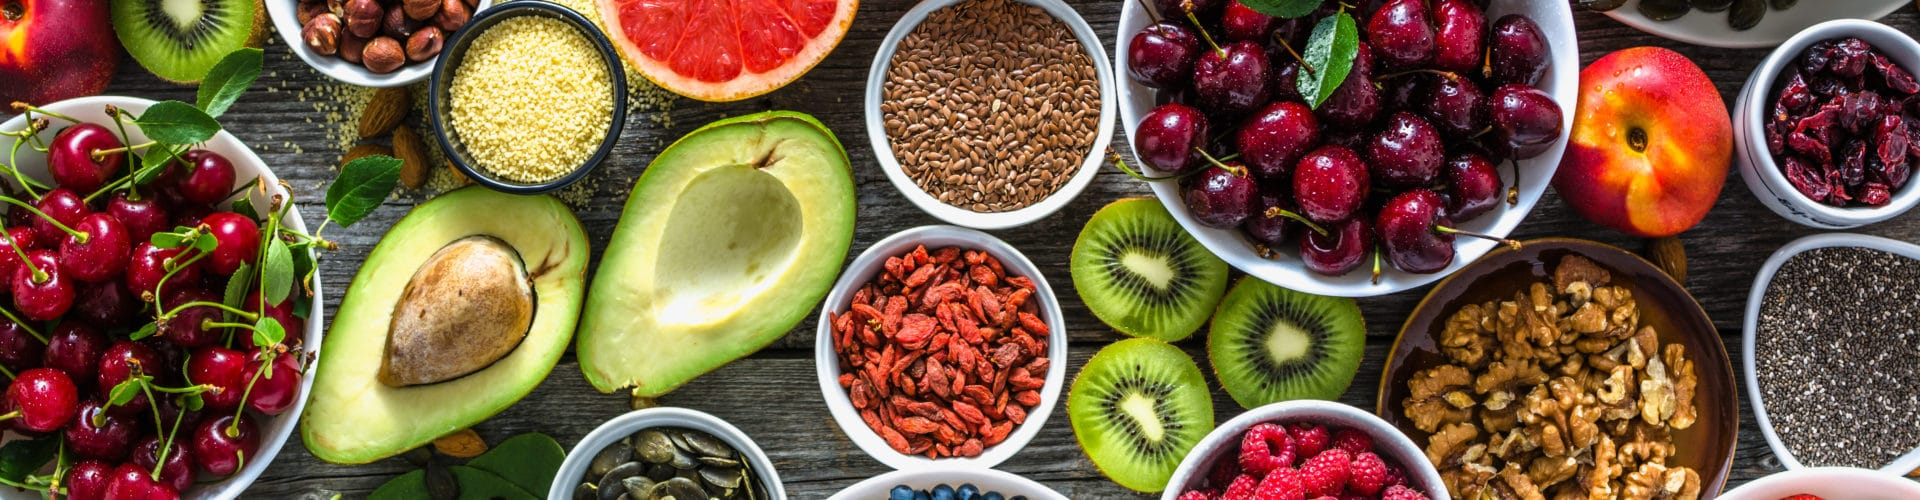 5 healthy foods that can help you get pregnant